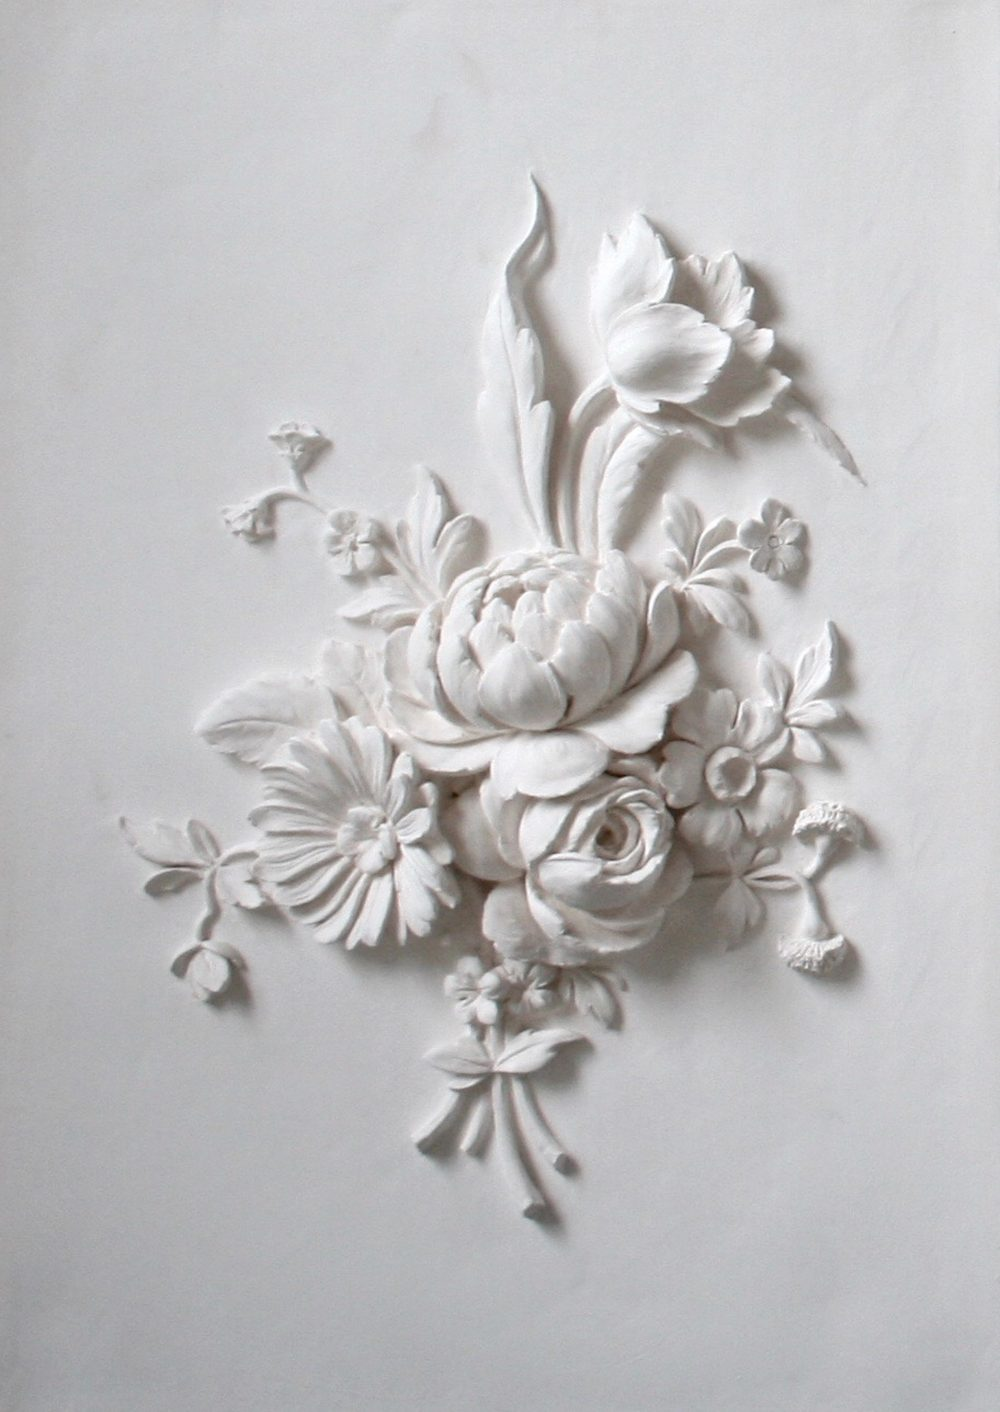 Geoffrey-Preston limited edition bas relief sculpture